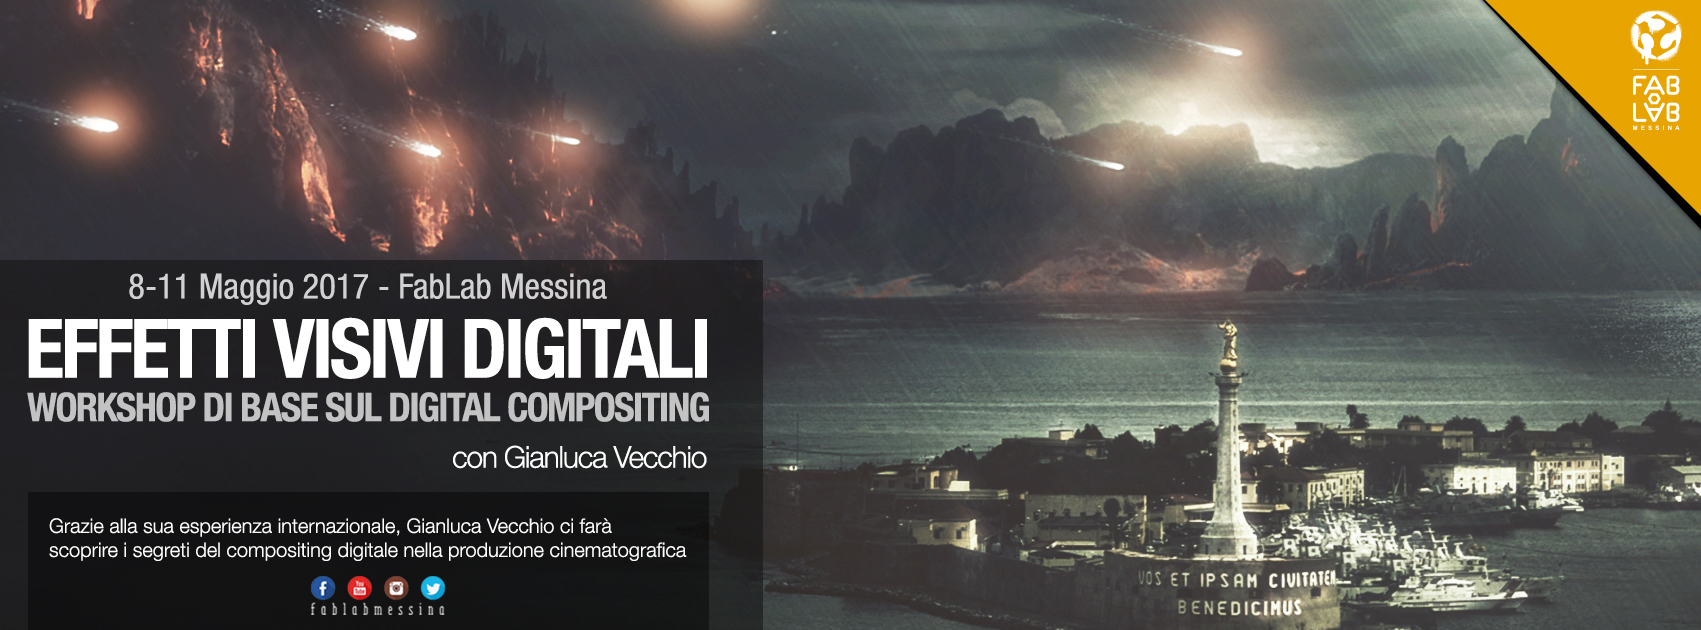 Effetti Visivi Digitali – Workshop di base sul Digital Compositing